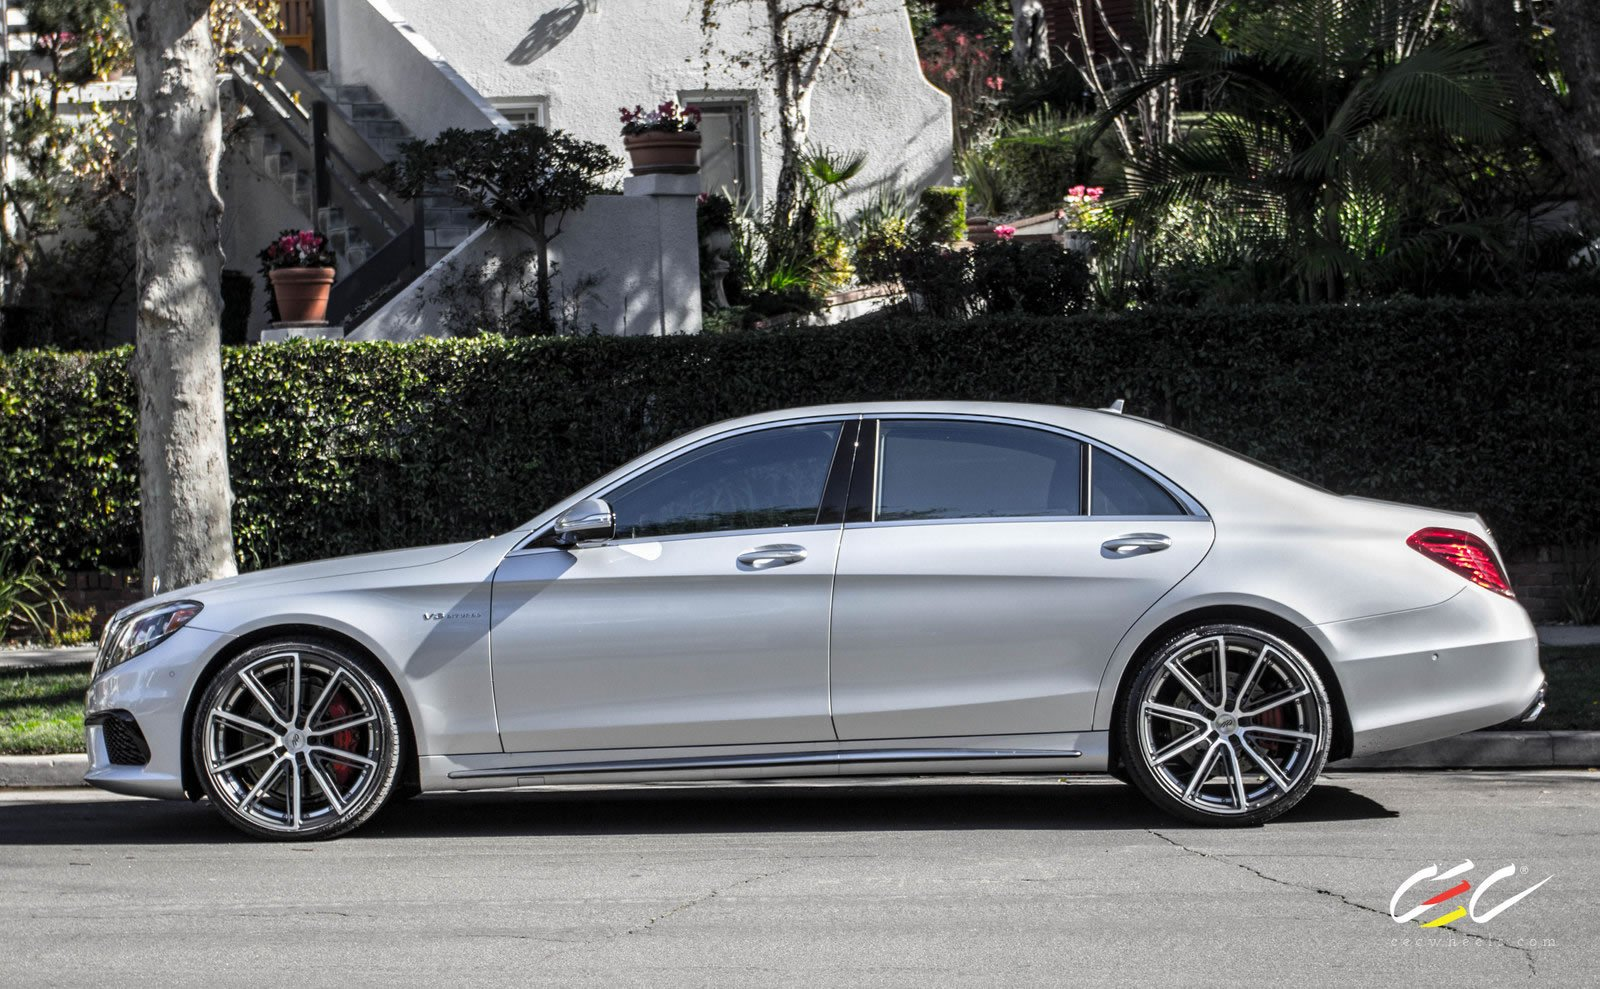 2015 Cec Wheels Tuning Cars Mercedes Benz S63 Amg